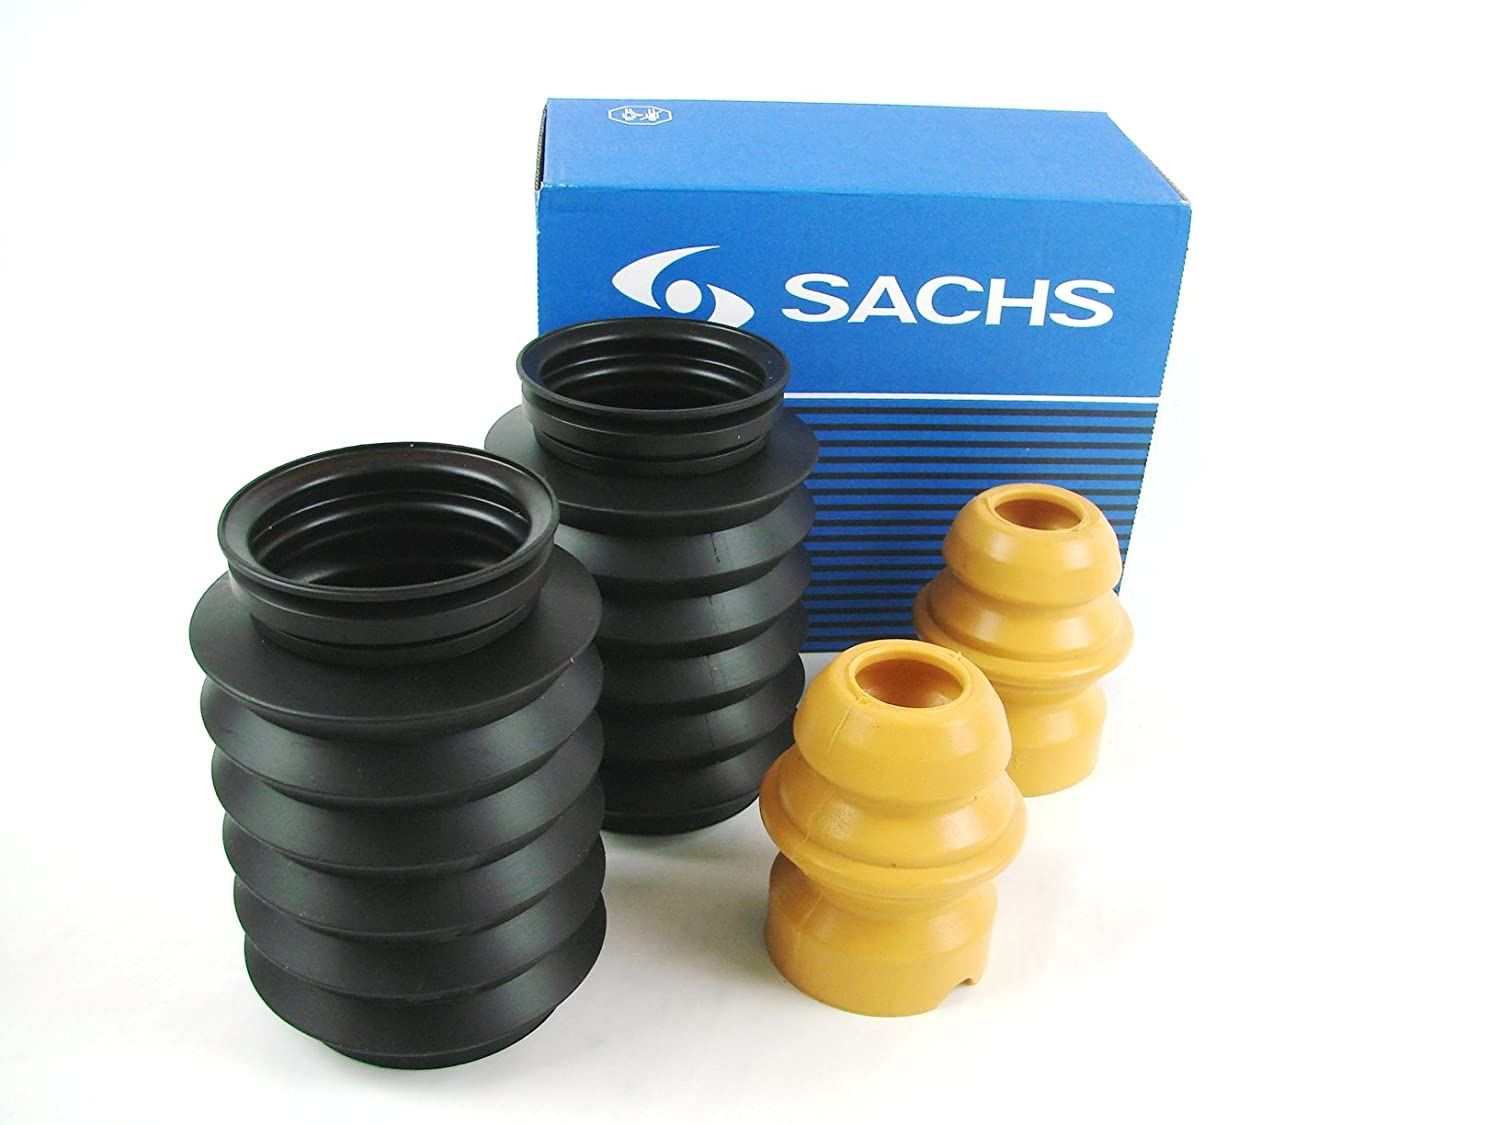 Sachs 900132 Vibration Damping ZF TRADING UK LTD